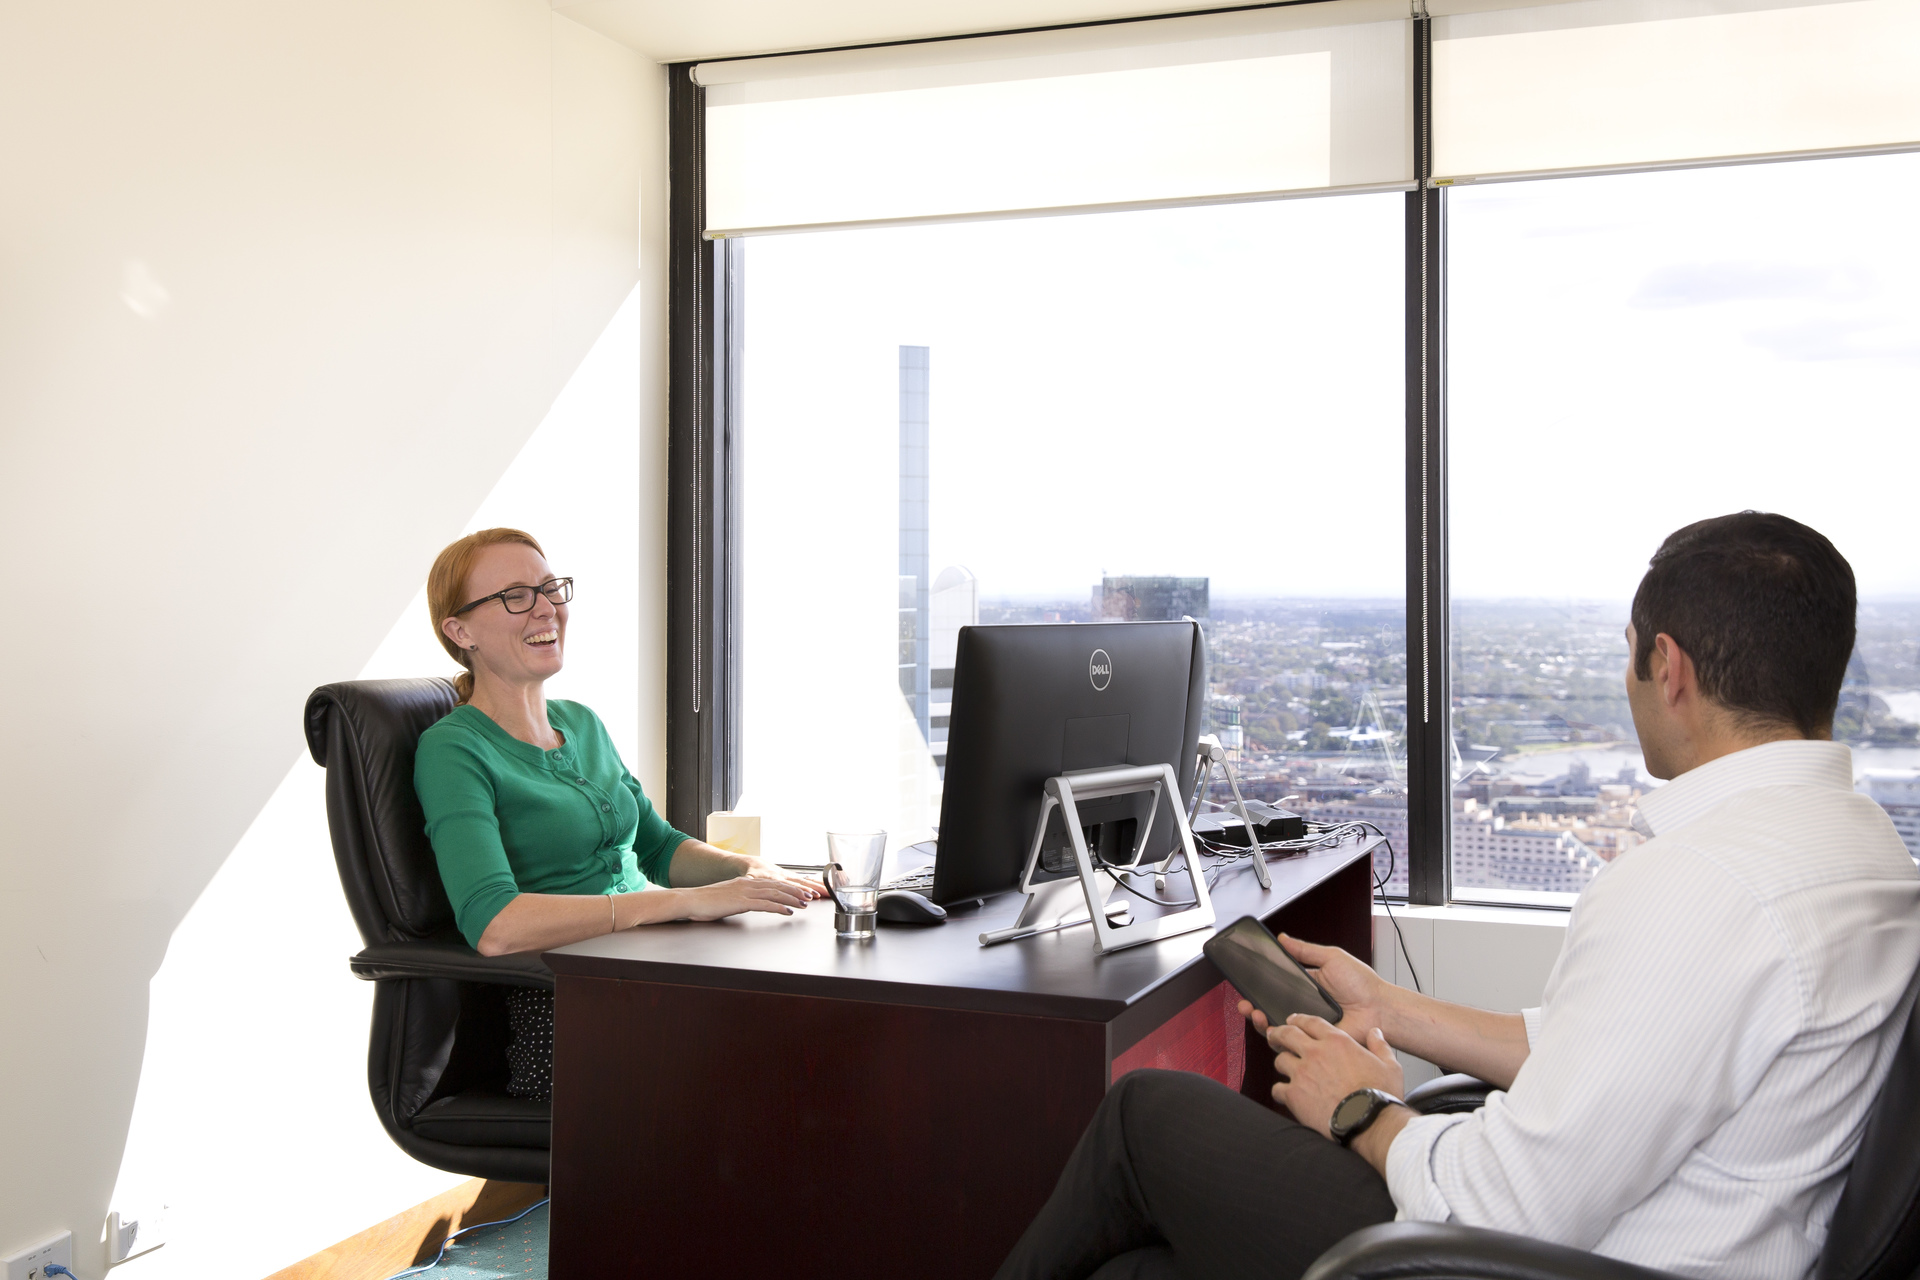 PRIME LOCATION OFFICES WITH EXCELLENT NATURAL VIEWS